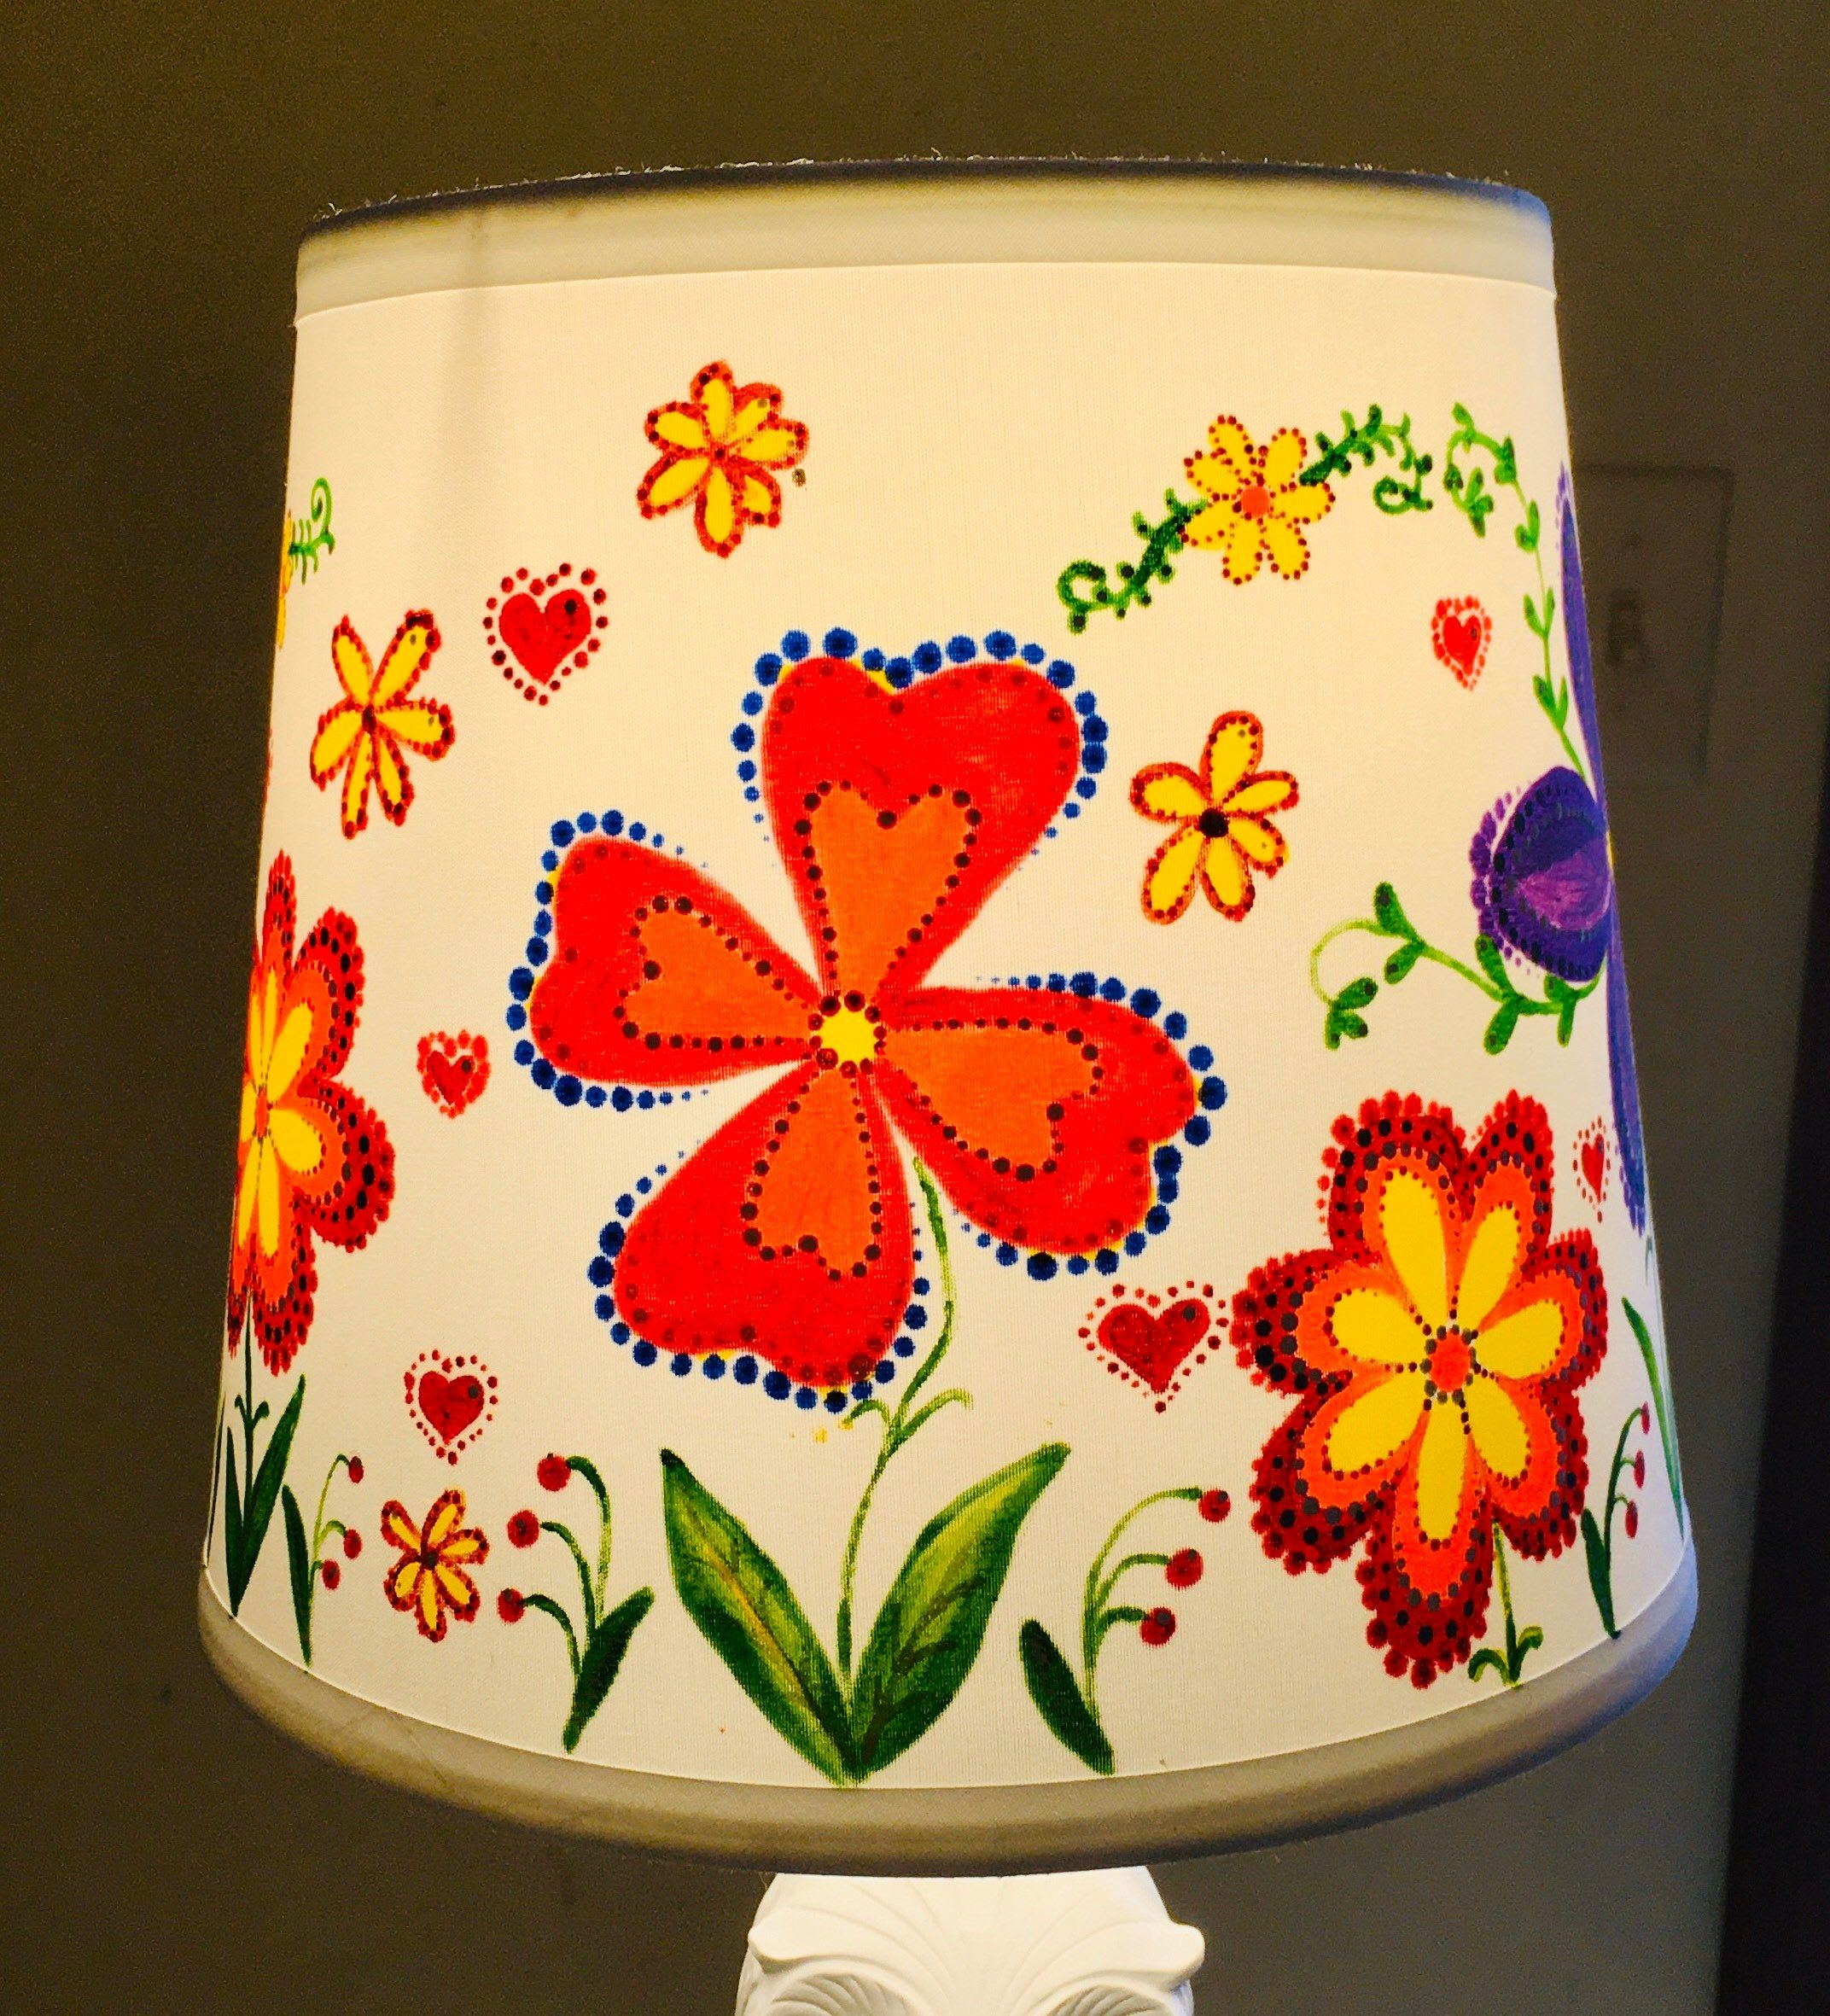 Spring Flowers Hand Painted Lamp Shade Colorful Floral Etsy In 2020 Painting Lamp Shades Painting Lamps Floral Lampshade